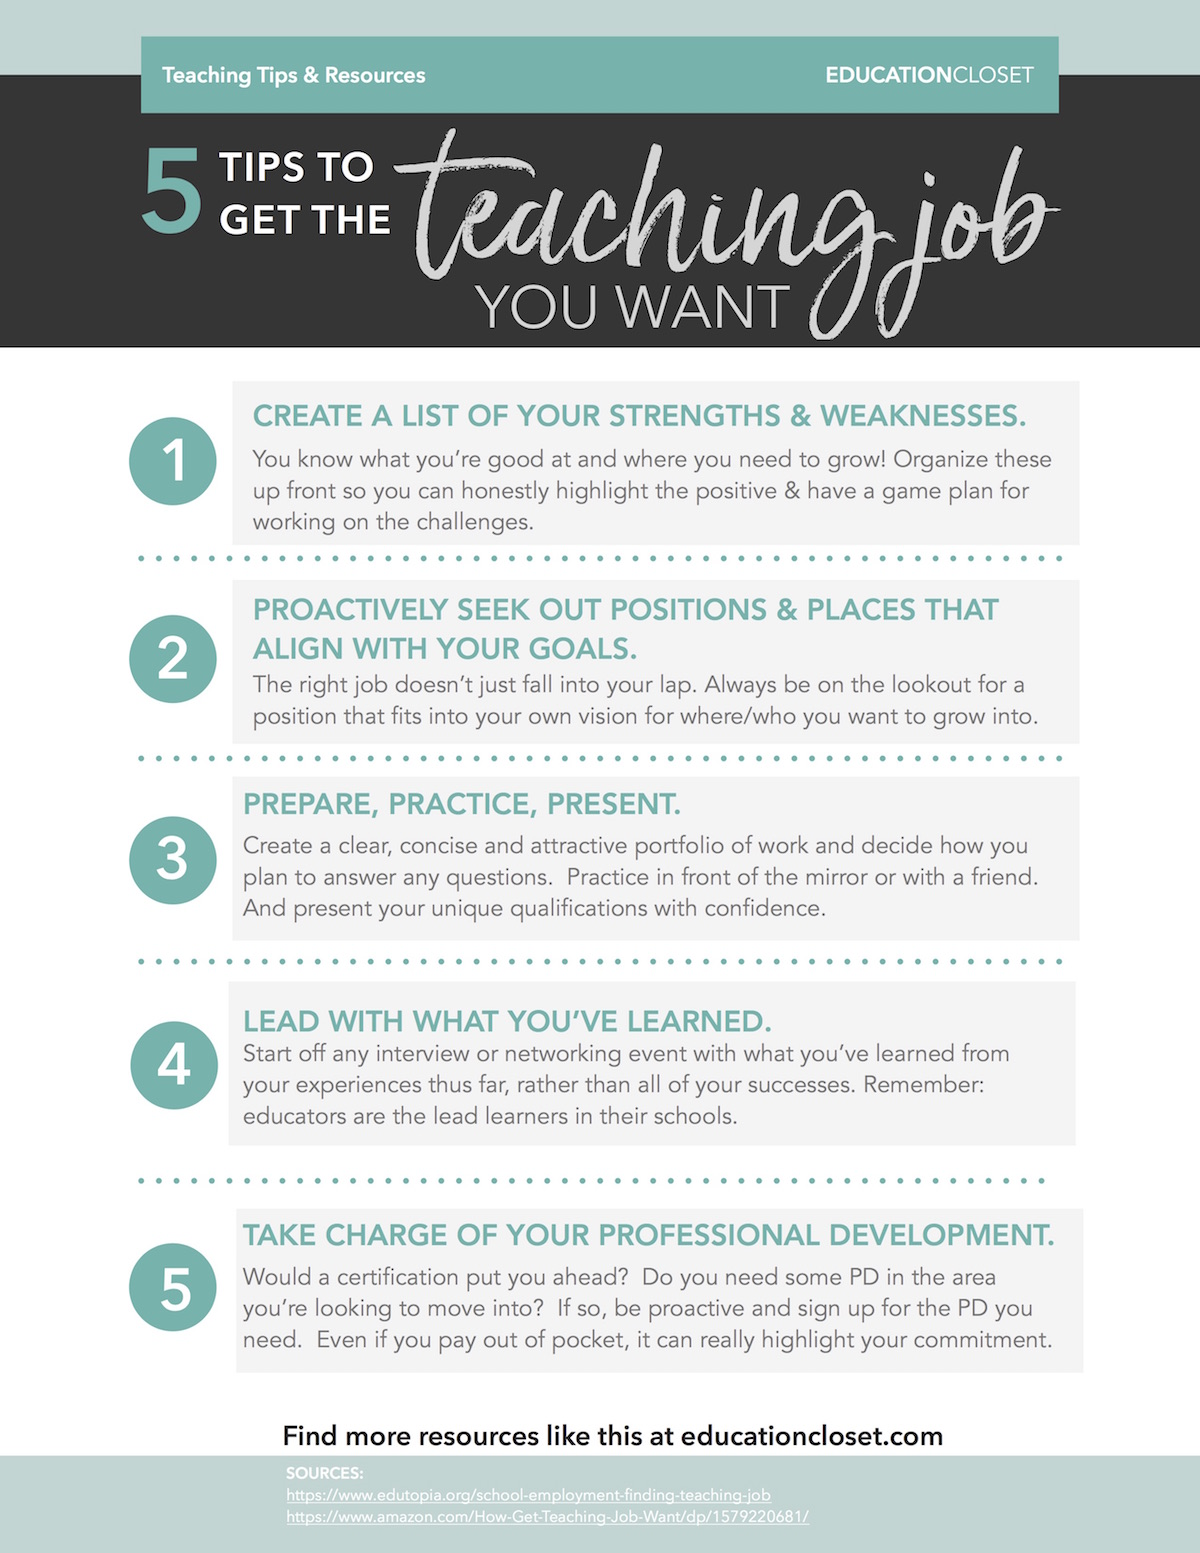 5 tips to get the teaching job you want educationcloset